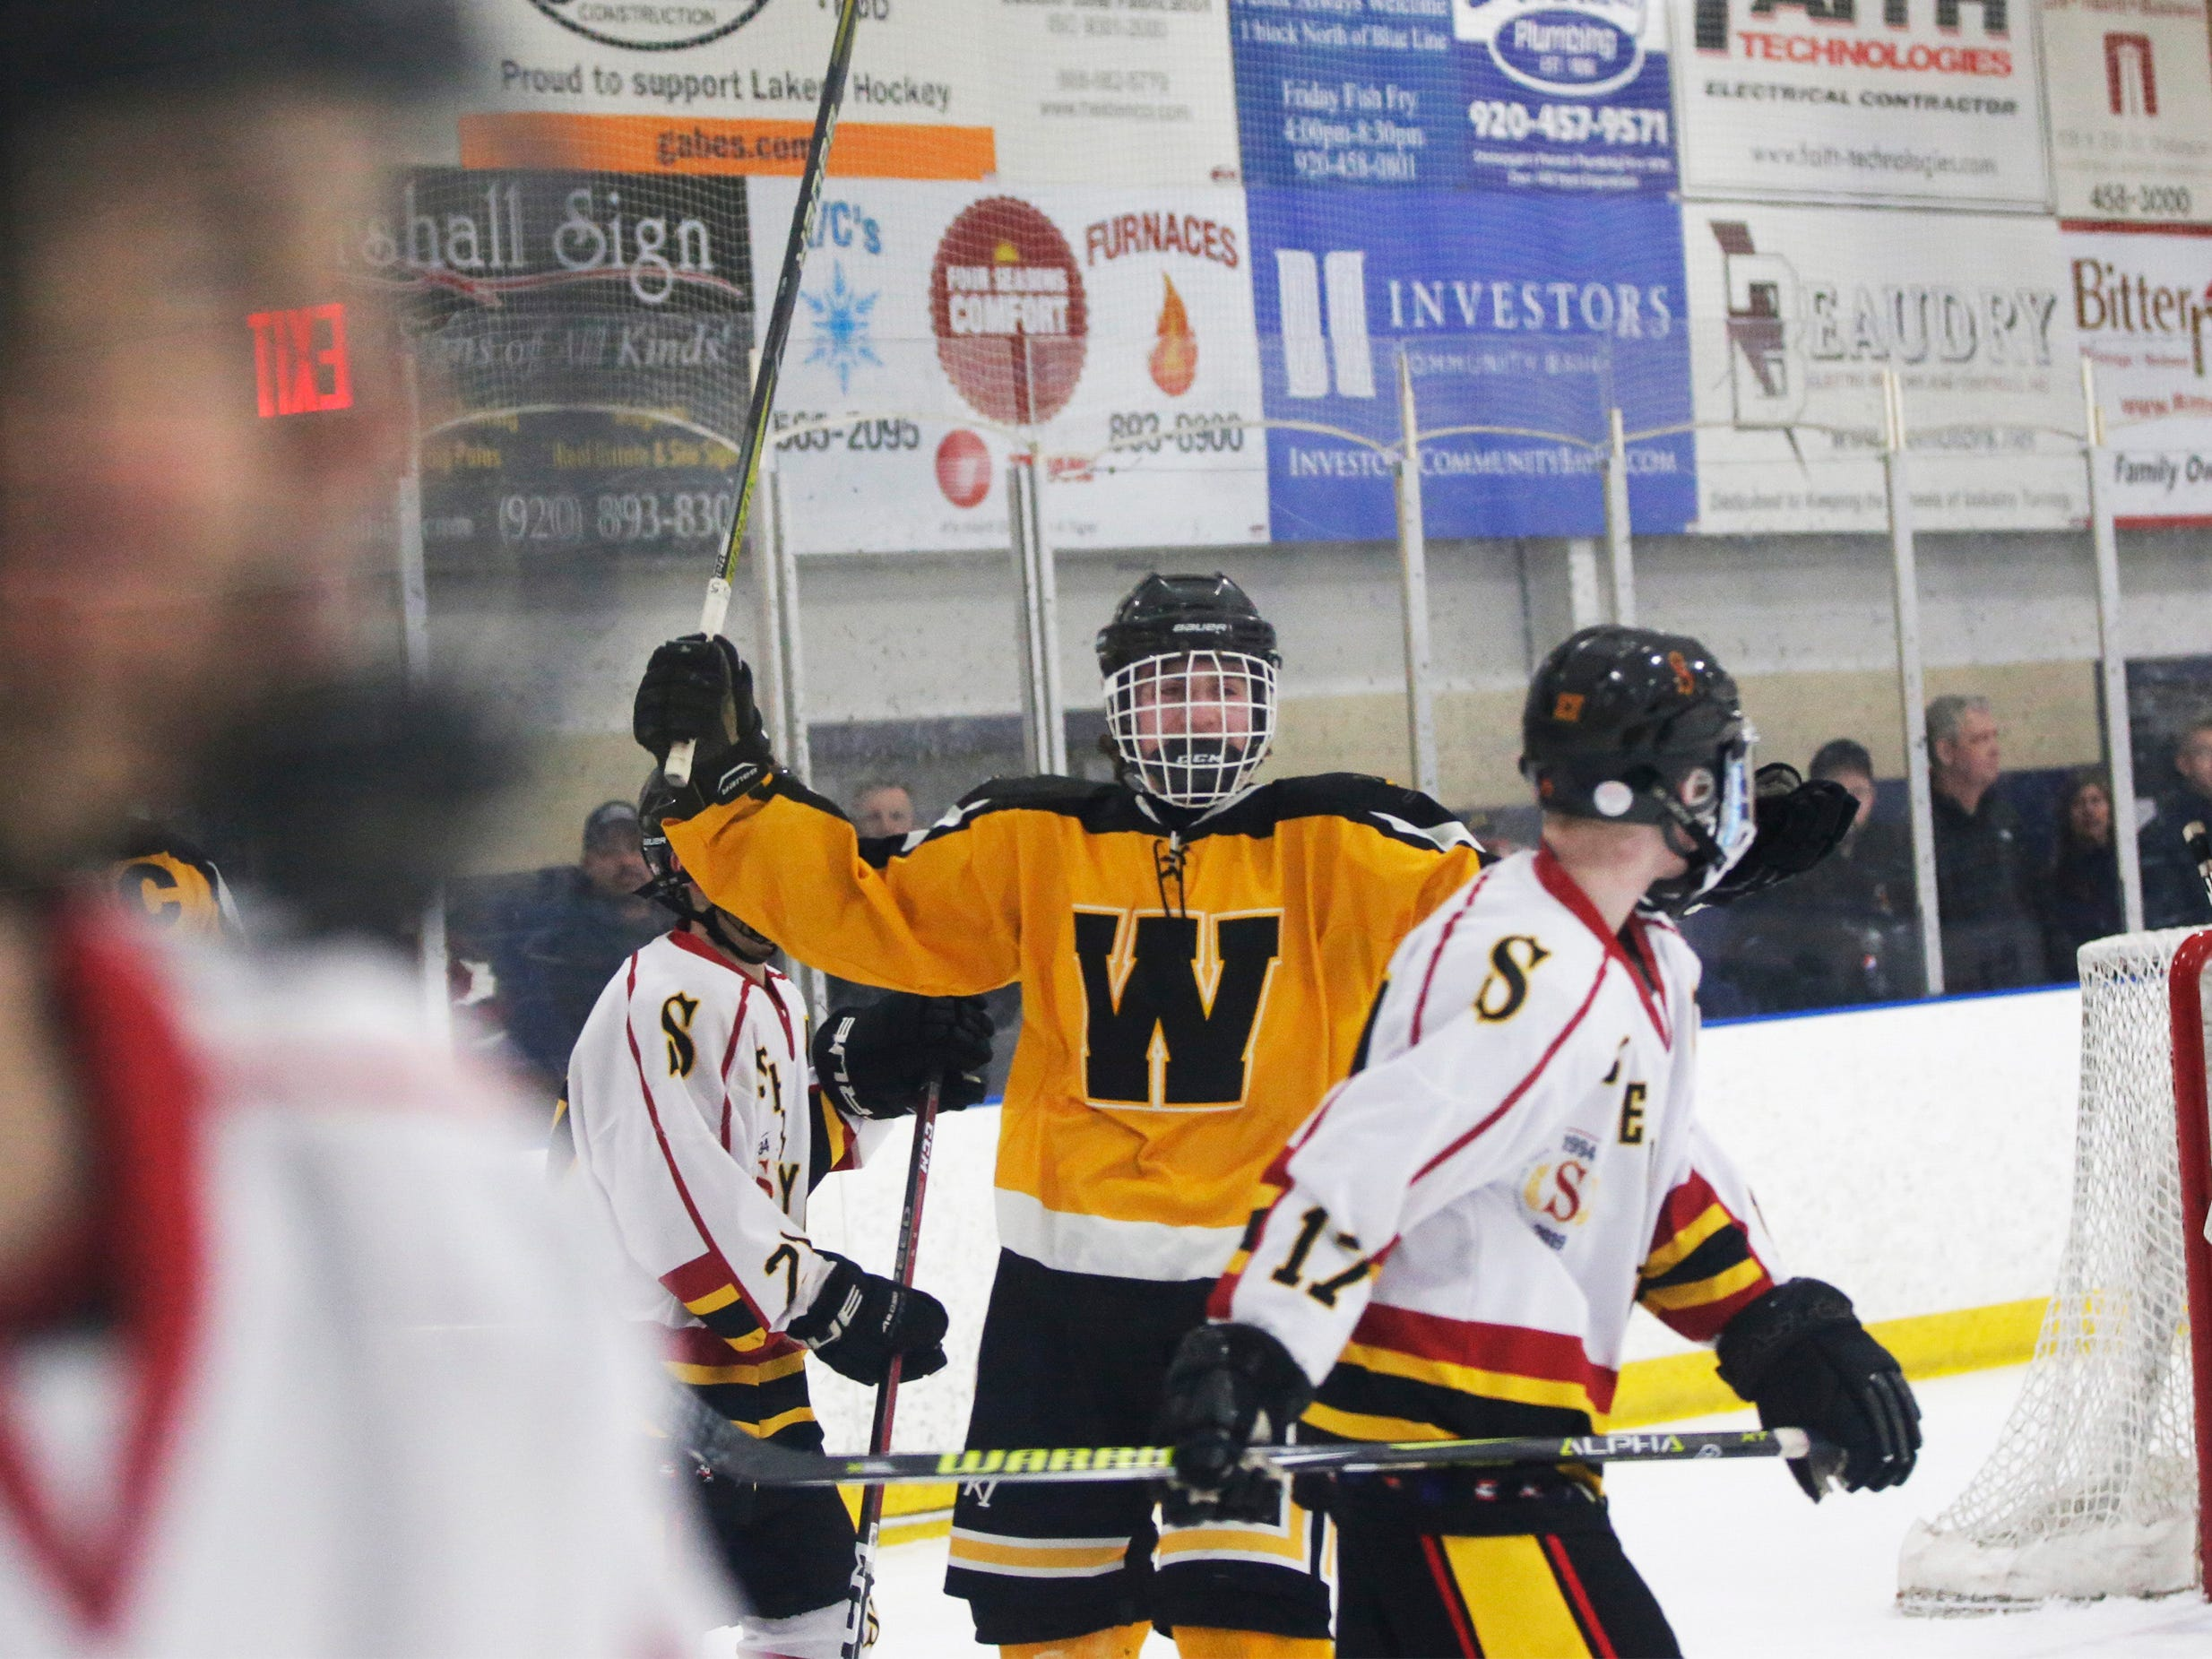 A Waupun player, center, celebrates his teams 2-1 victory over the Sheboygan Red Raiders, Wednesday, February 13, 2019, in Sheboygan, Wis.